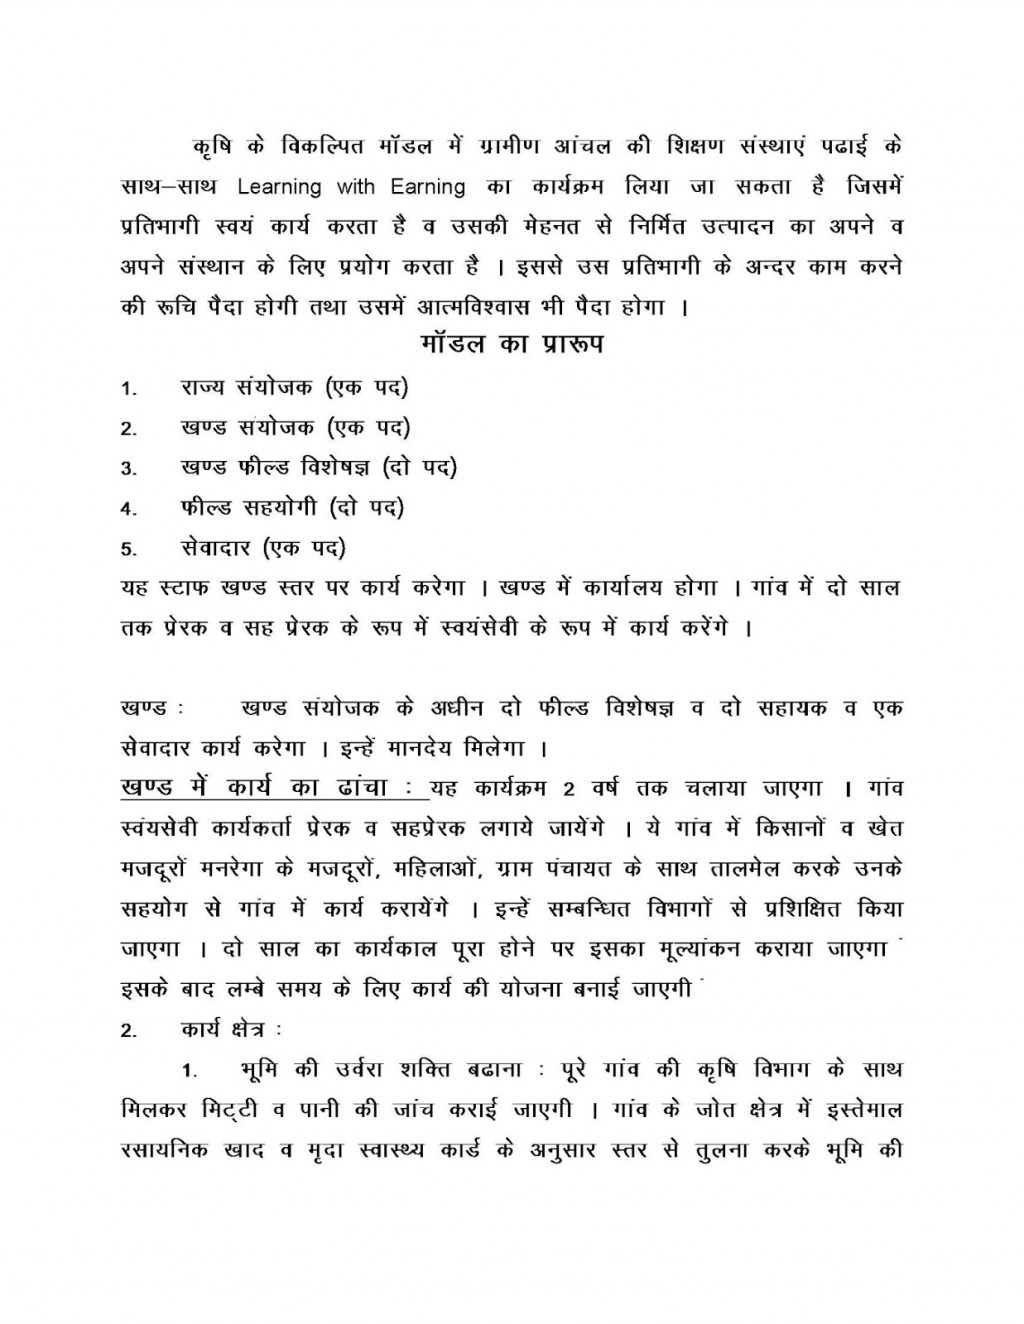 005 Hindi252bwork252bdr 252brajinder252bsingh Page 8 Lyric Essay Unique Example Examples Analysis Song Large